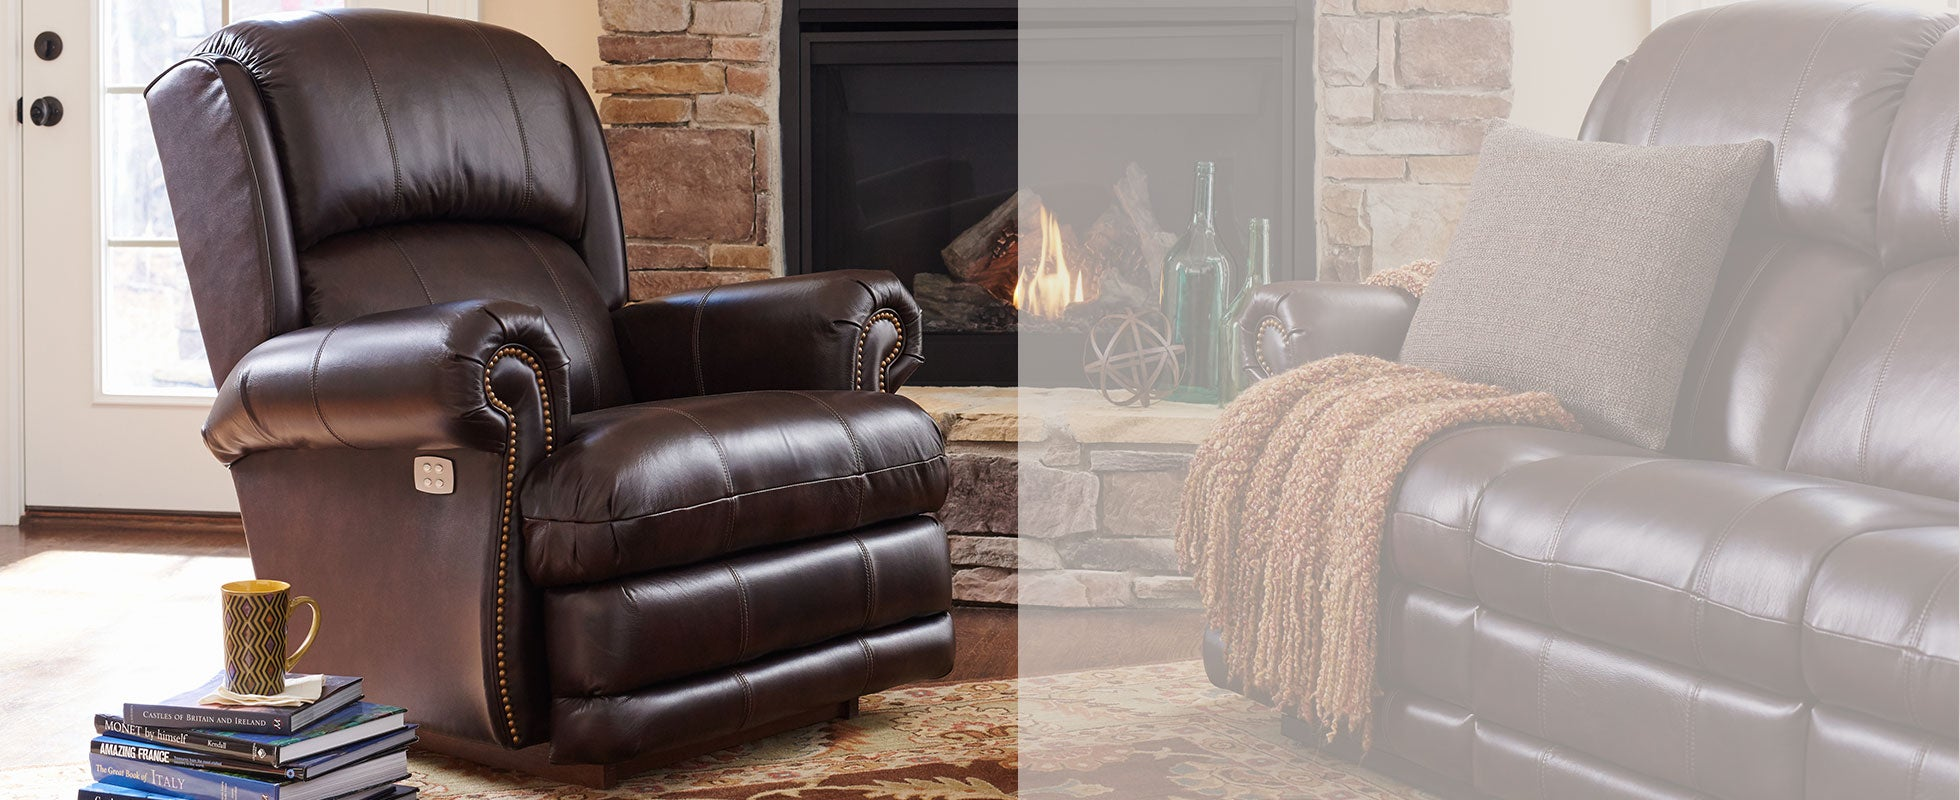 Furniture Living Room Seating Recliners